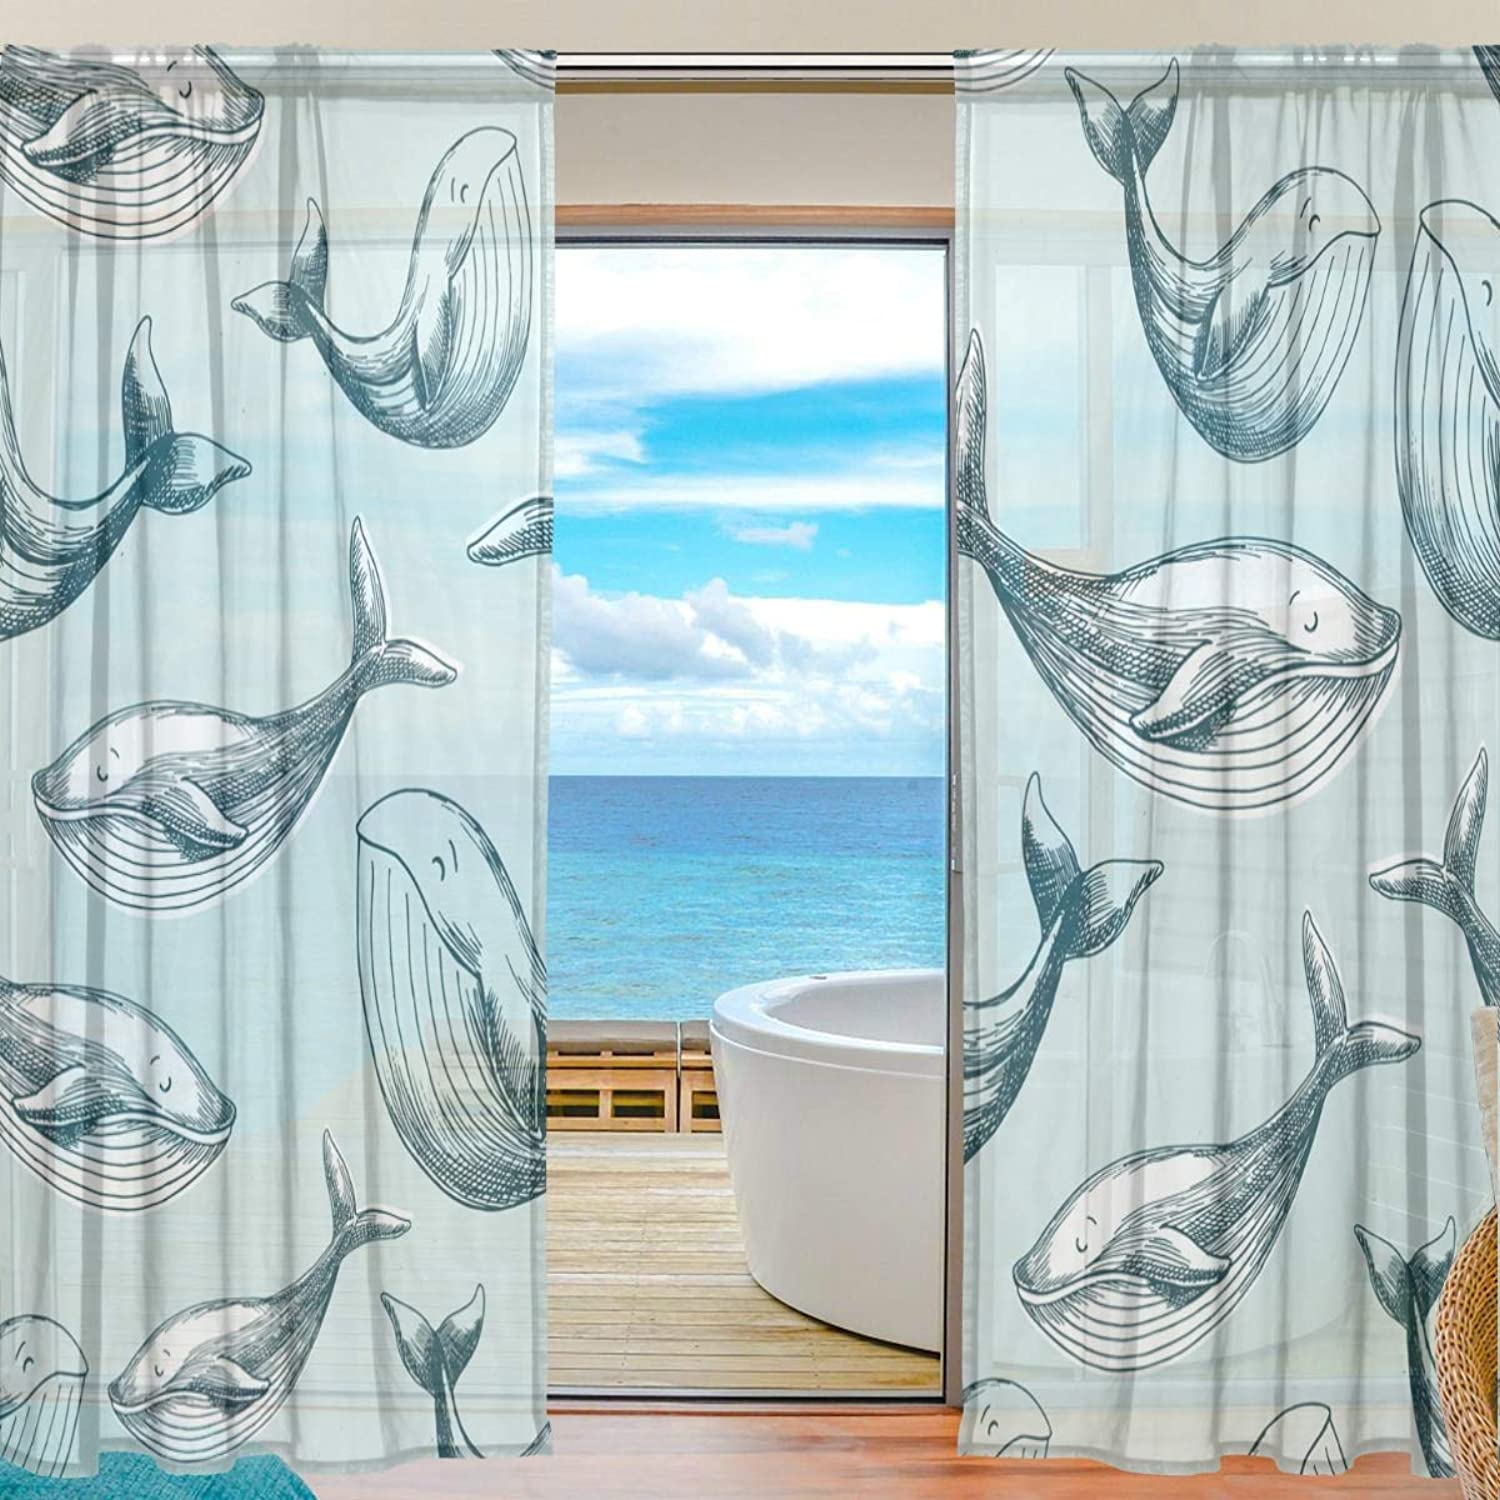 Whale Pattern 2 Pieces Curtain Panel 55 x 78 inches for Bedroom Living Room